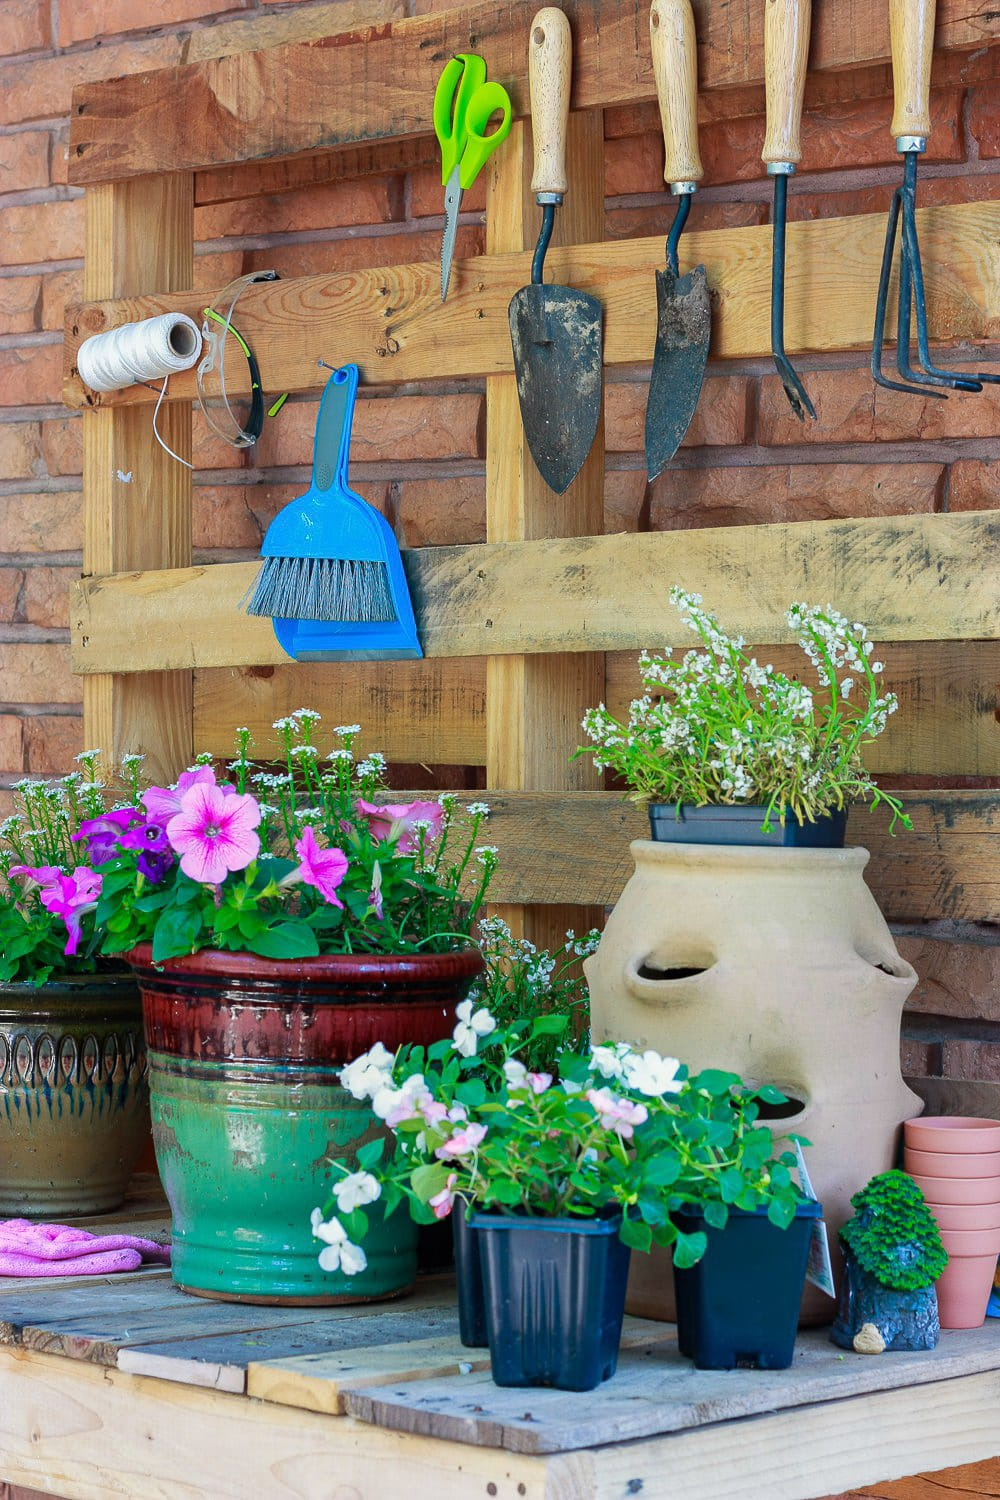 DIY POTTING BENCH - Amber Oliver